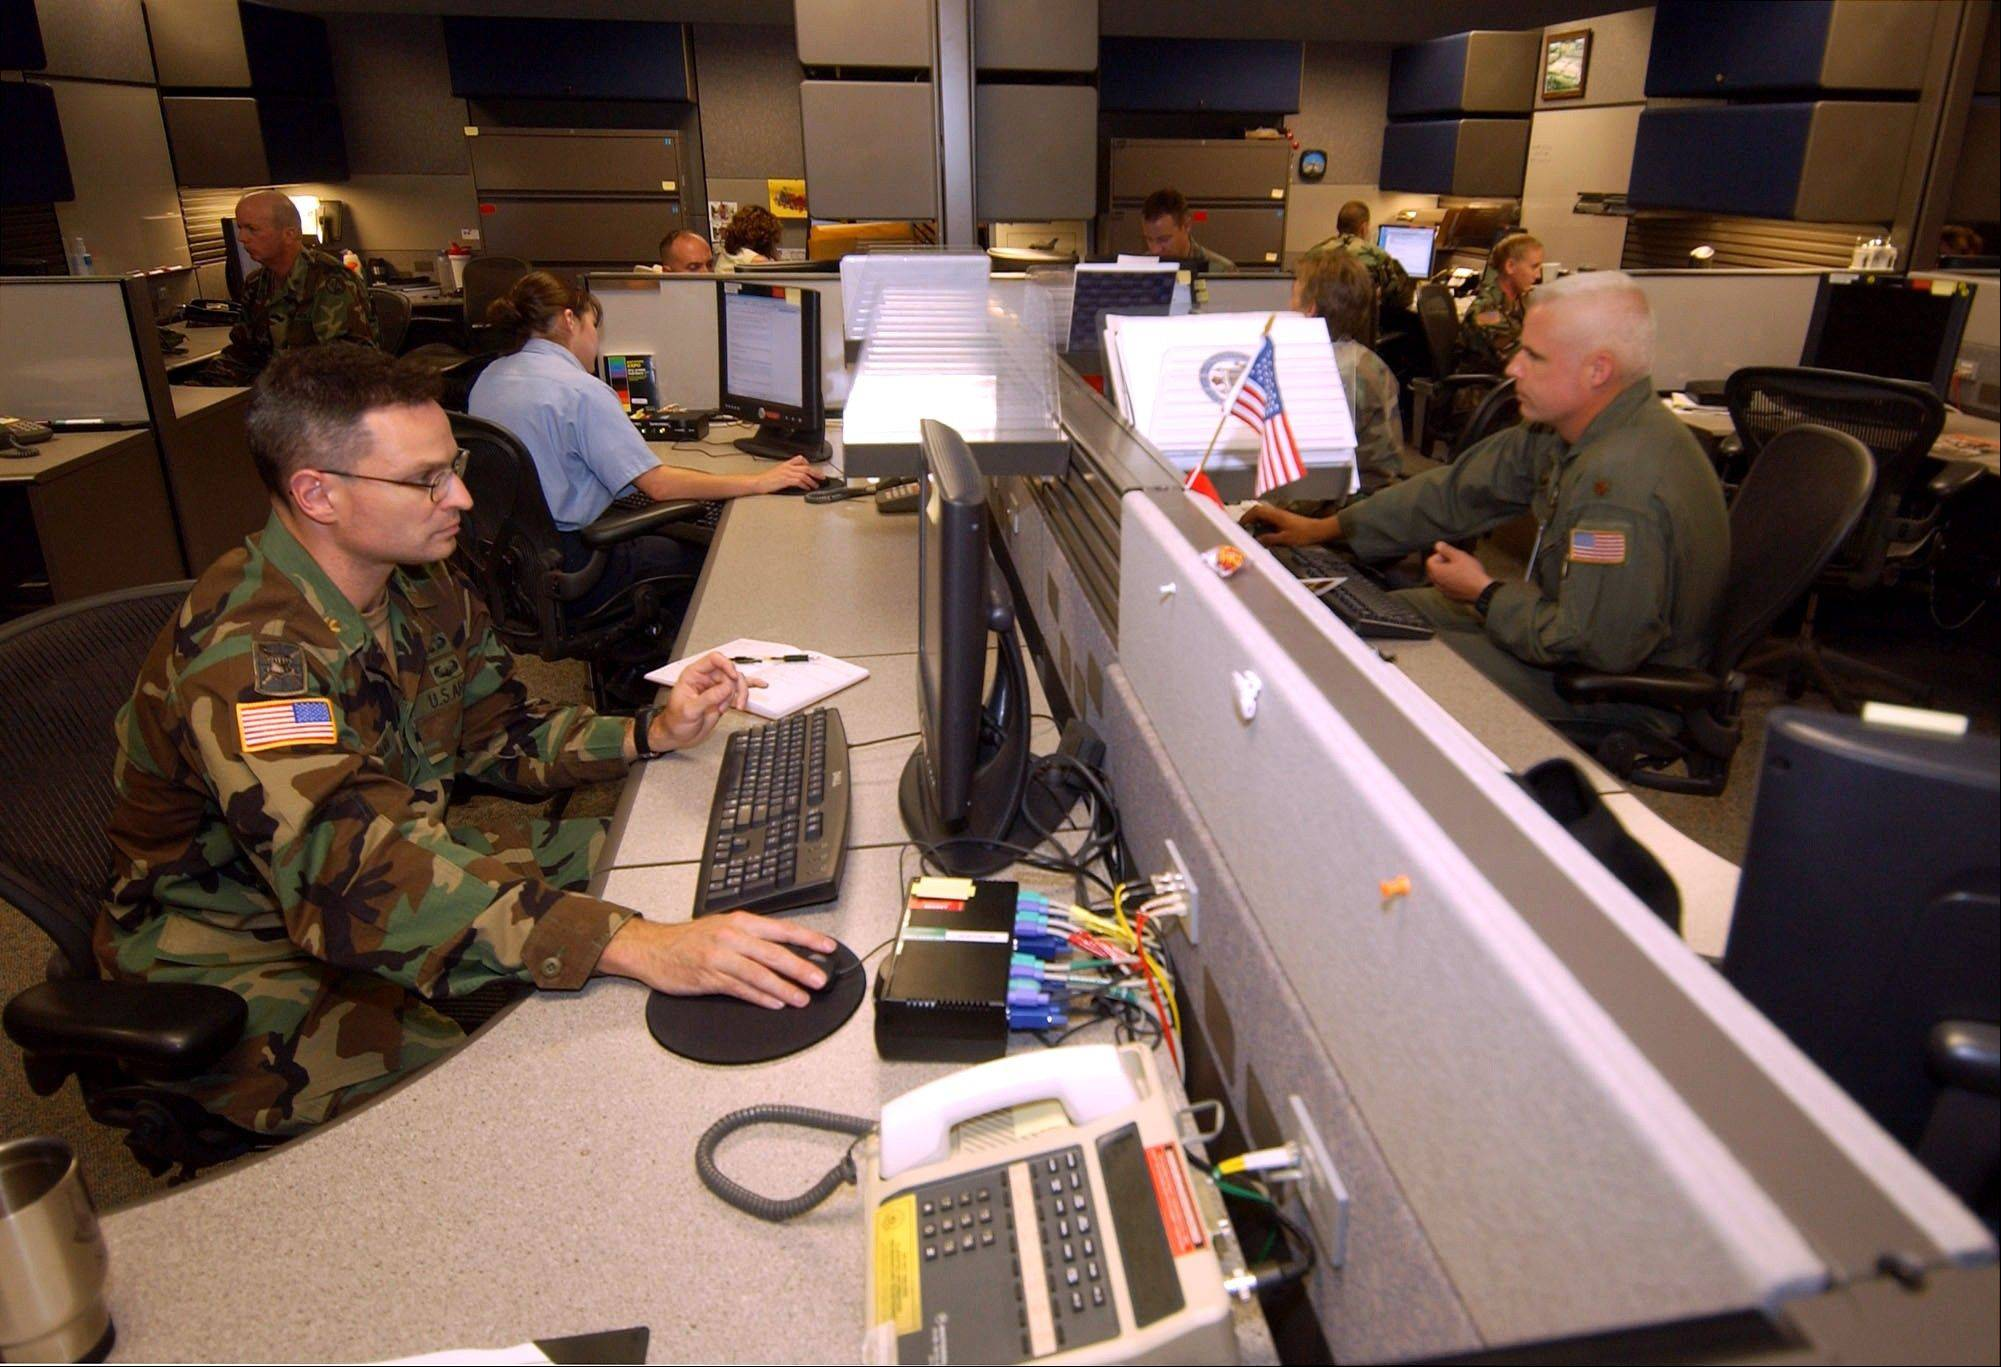 This Aug. 25, 2004 file photo shows unidentified analysts at the Combined Intelligence and Fusion Center for NORAD/Northcom in Colorado Springs, Colo. A multibillion-dollar information-sharing program that was created in the aftermath of Sept. 11 has improperly collected information about innocent Americans and produced no valuable intelligence on terrorism, according to a Senate report that describes an effort that ballooned far beyond anyone�s ability to control.